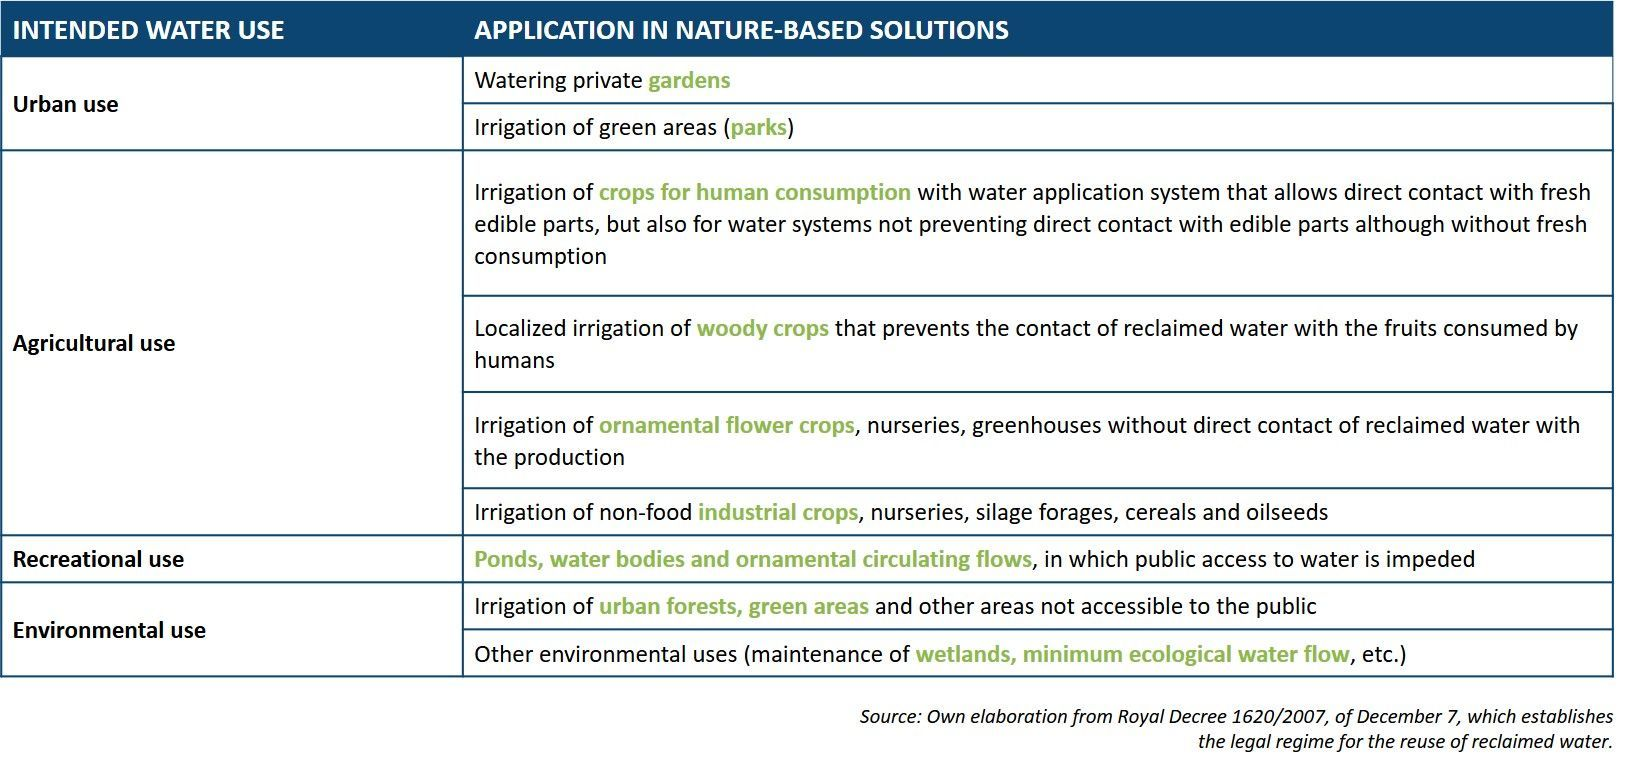 Table of uses of reclaimed water and application in nature-based solutions